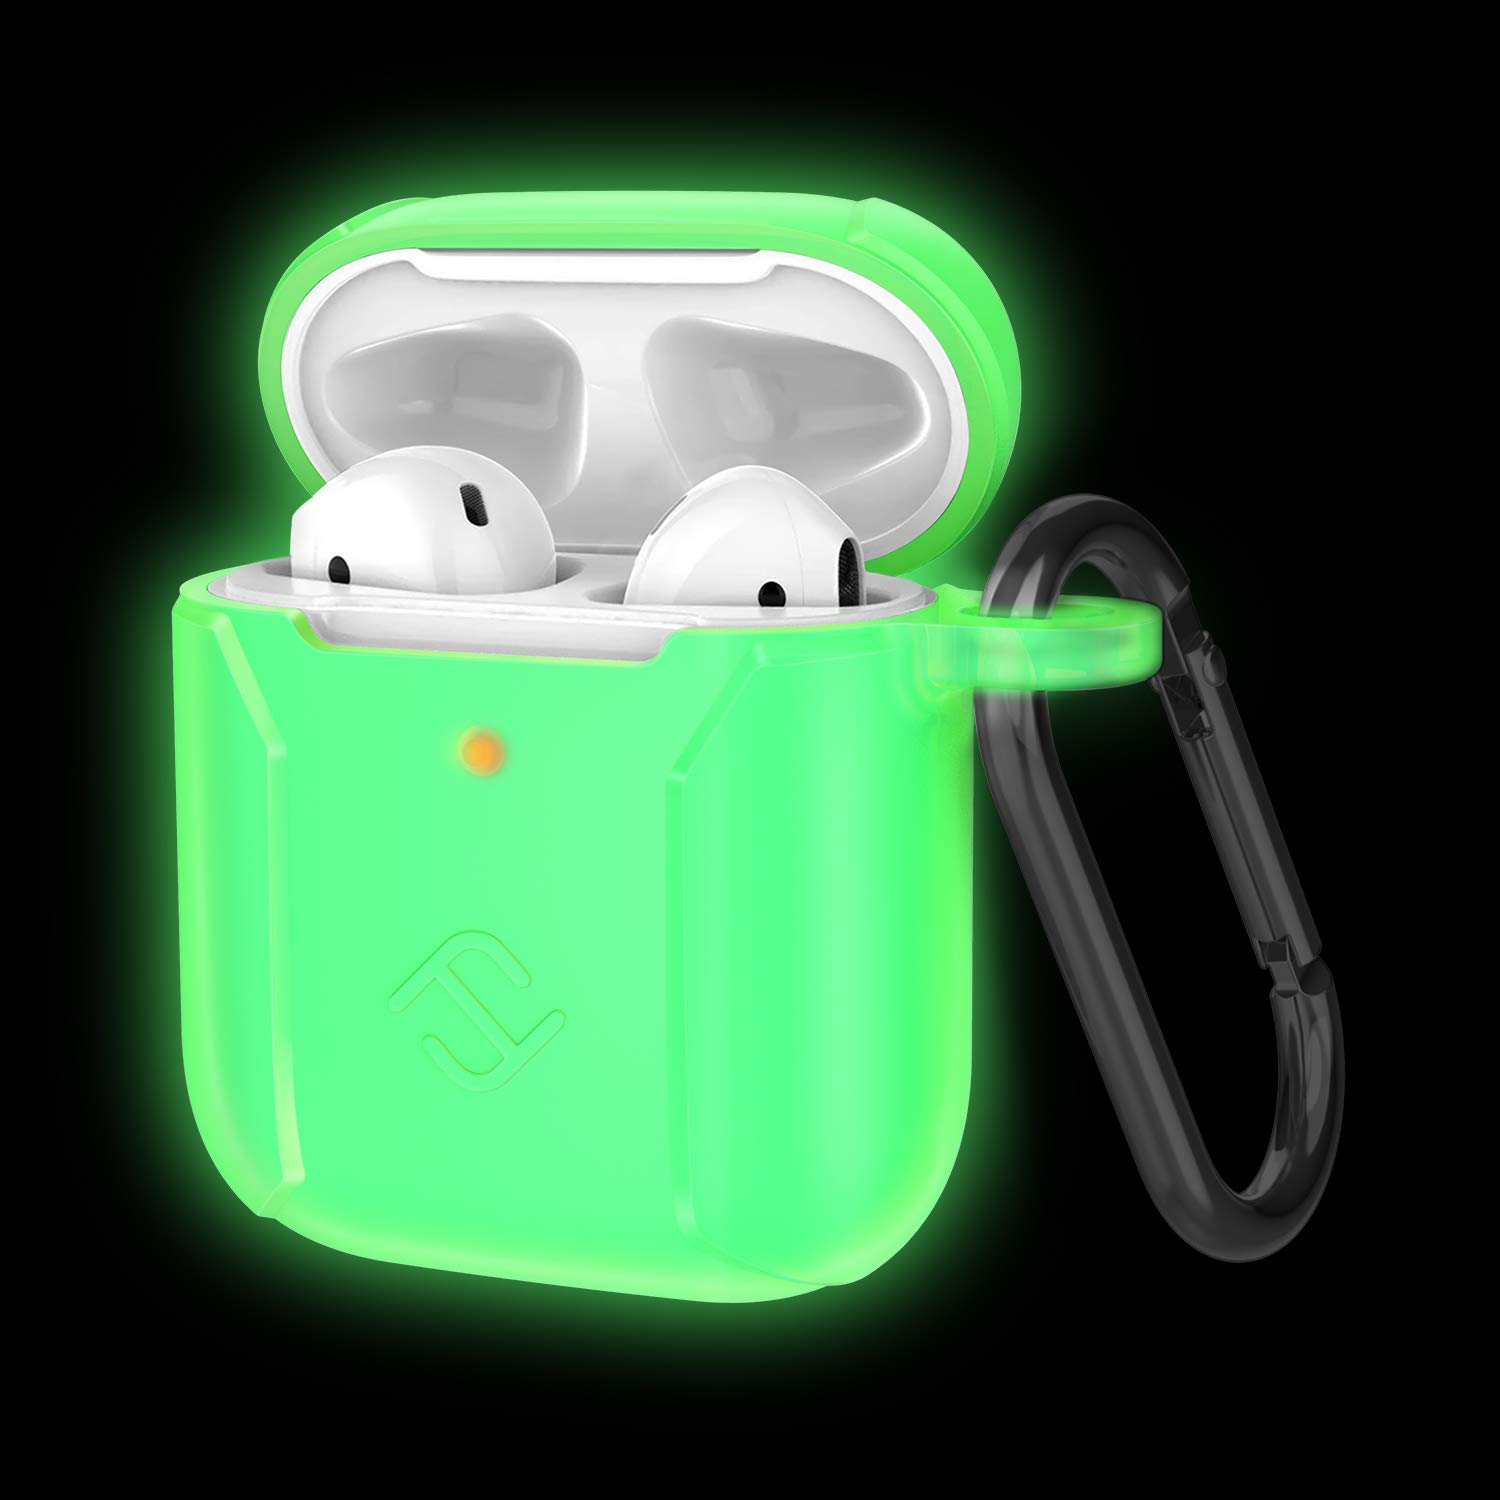 Fintie Case for Newest AirPods 2019, Premium Silicone Shockproof Protective Cover Skin [Front LED Visible] Compatible with AirPods 1 and 2 Charging Case, Green-Glow in The Dark